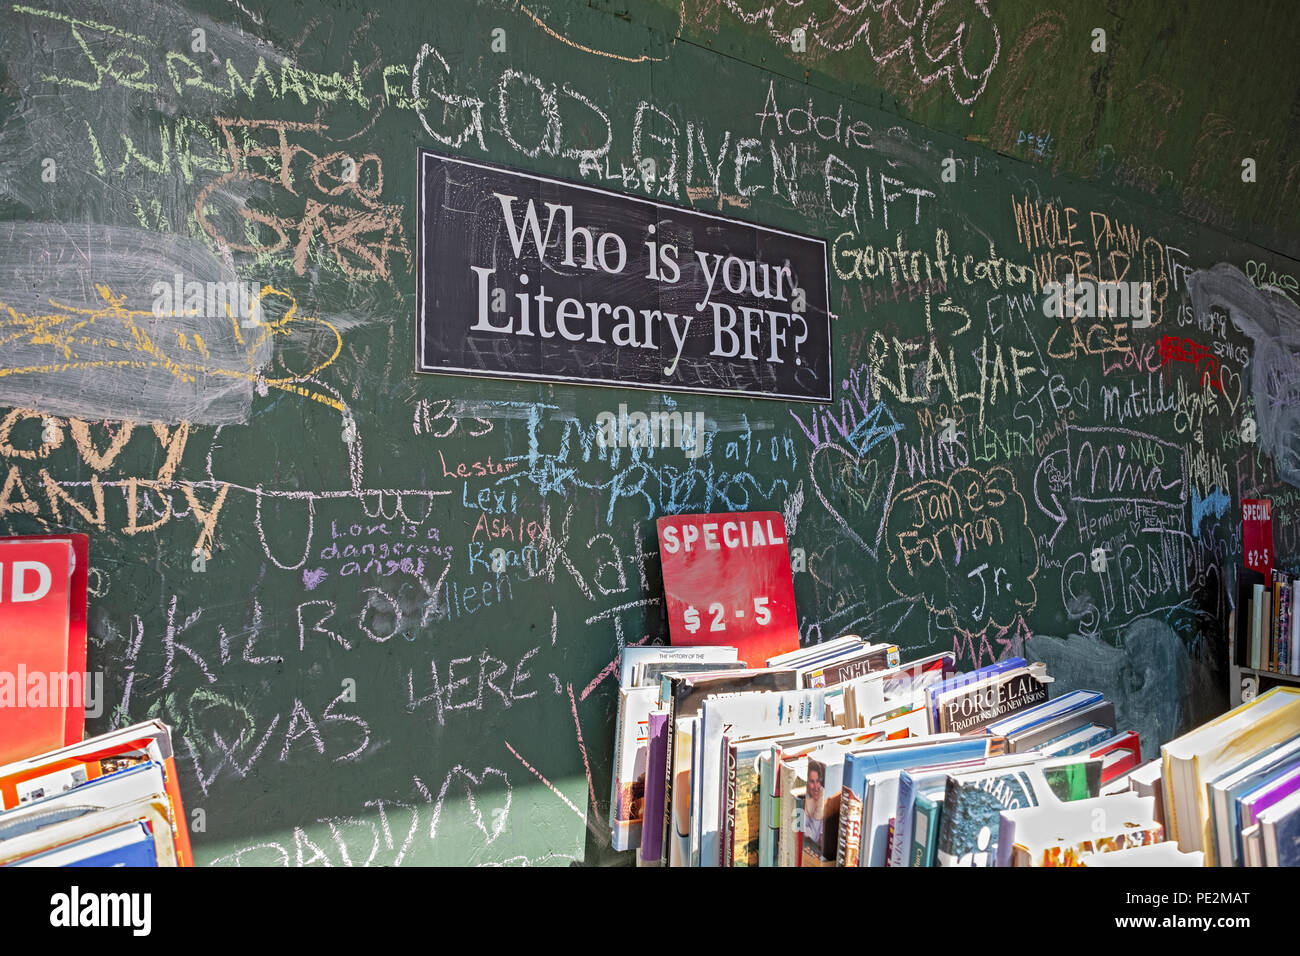 Graffiti  on an exterior wall of the Strand Bookstore answering the question 'Who is your Literary BFF.' - Stock Image